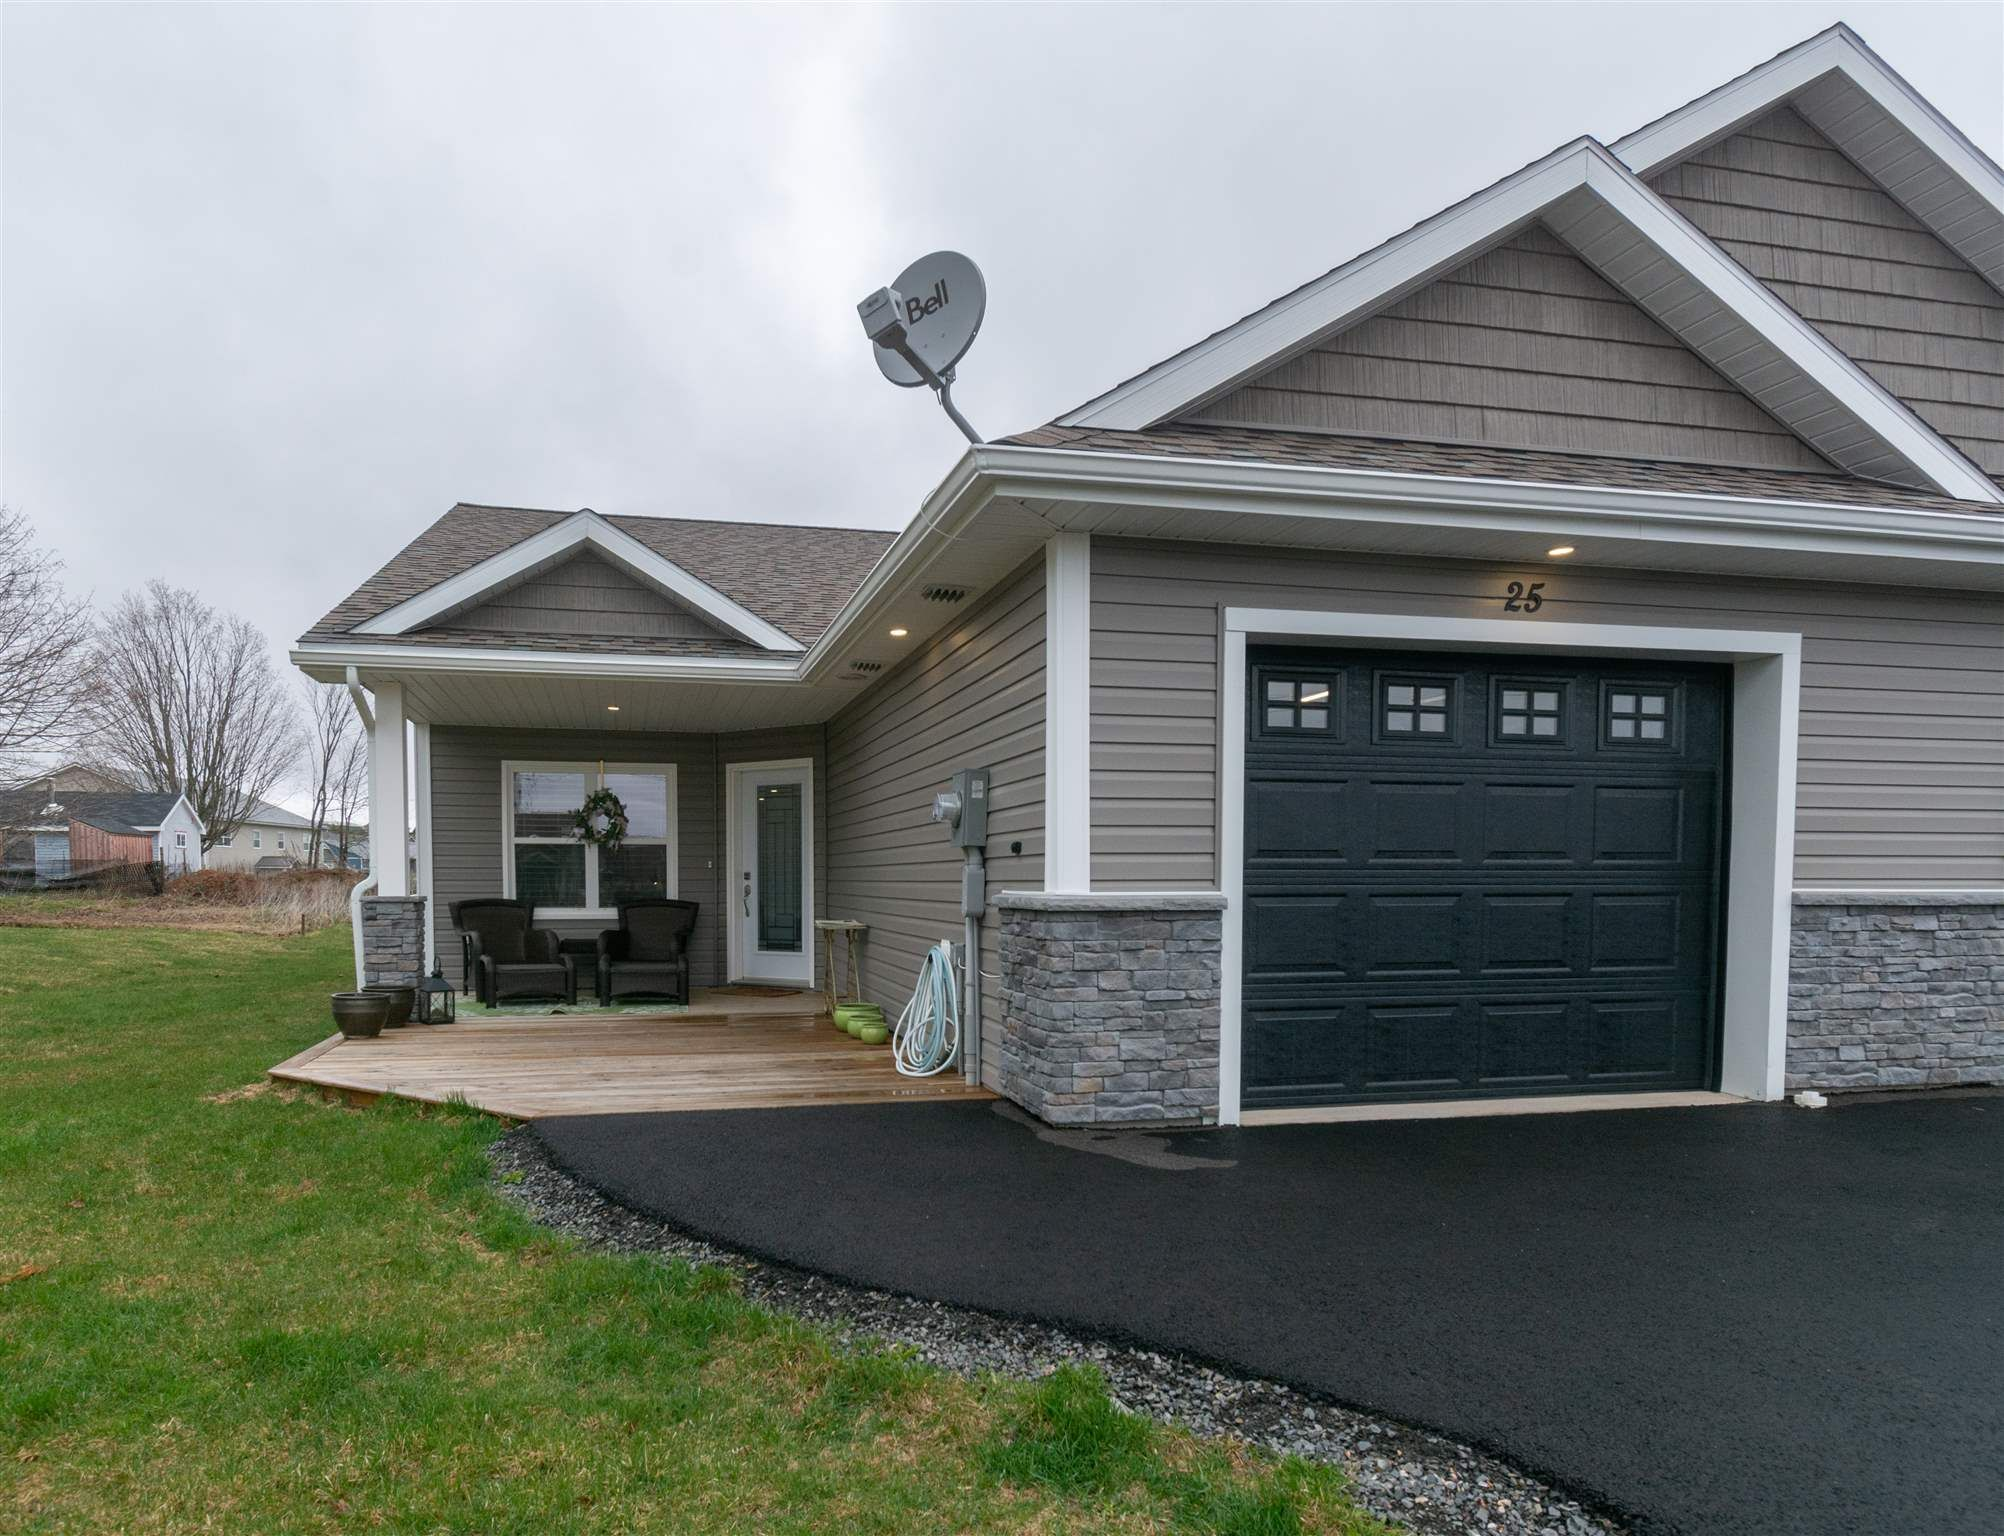 Main Photo: 25 Selena Court in Port Williams: 404-Kings County Residential for sale (Annapolis Valley)  : MLS®# 202109667